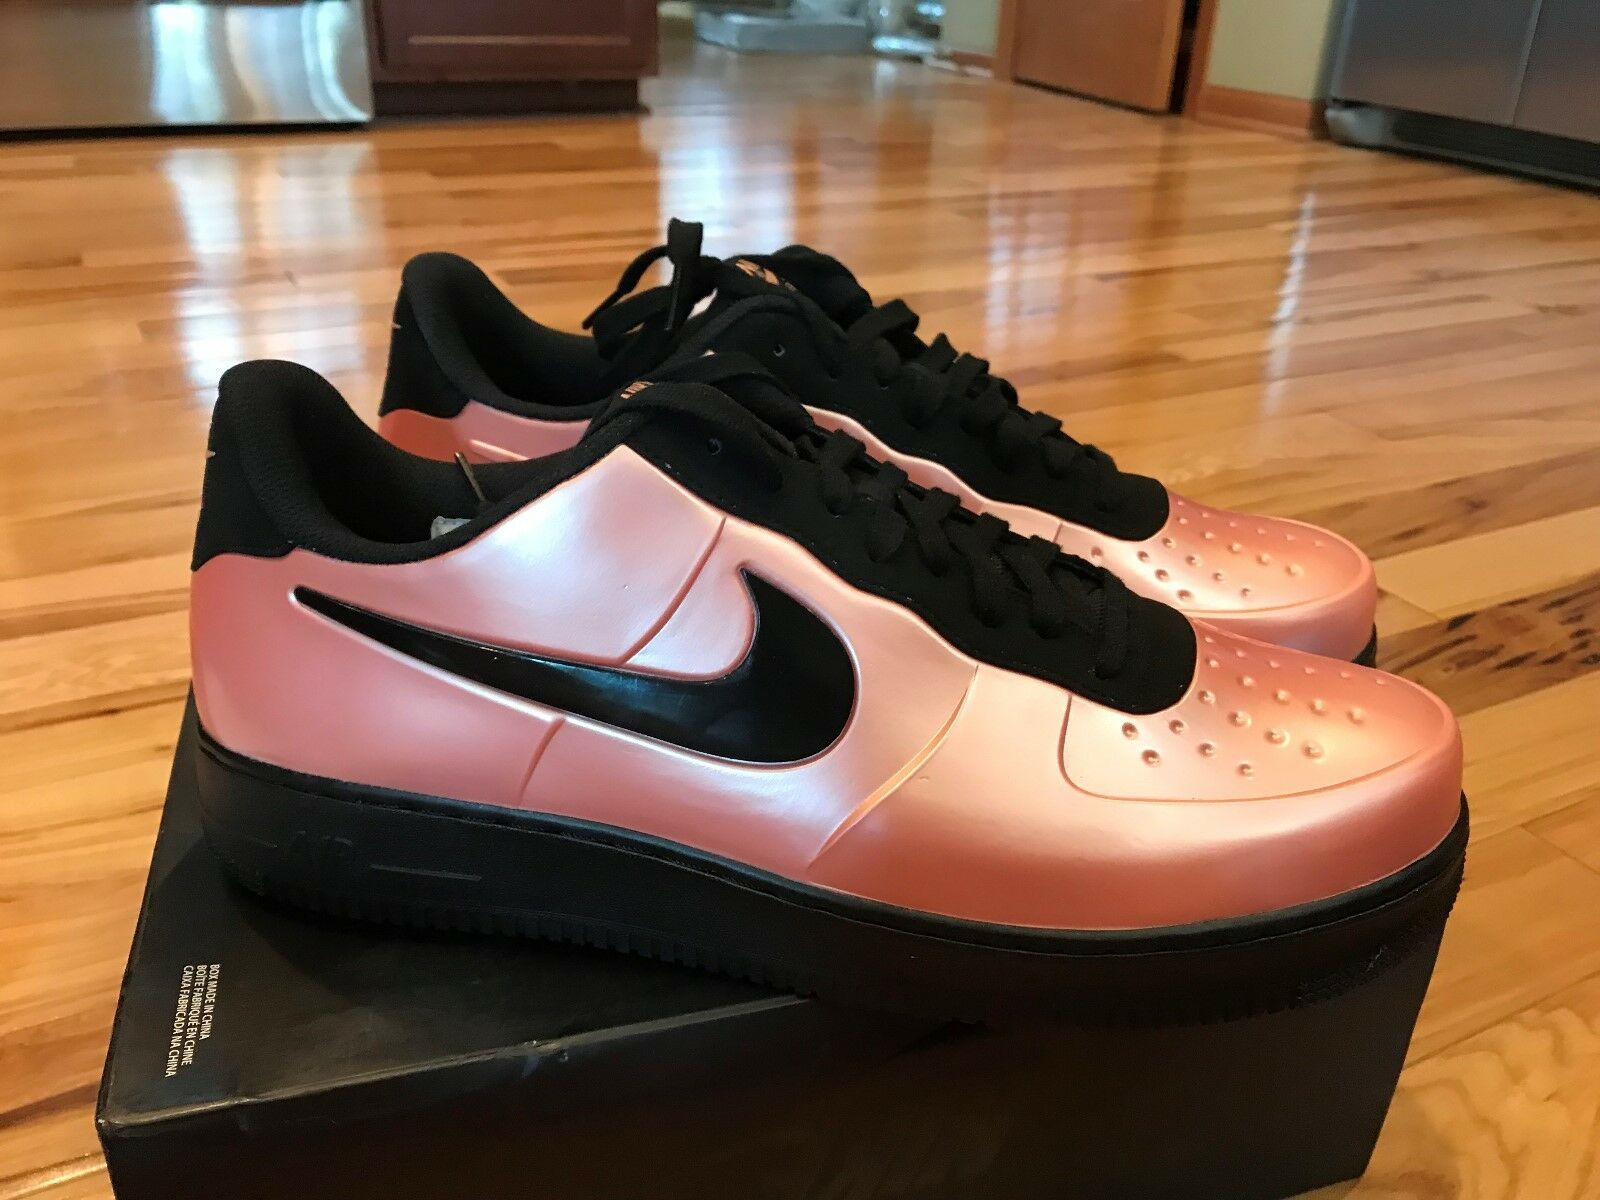 Nike AF1 Foamposite Pro Cup Air Force 1 Coral Stardust Black AJ3664-600 Size 14